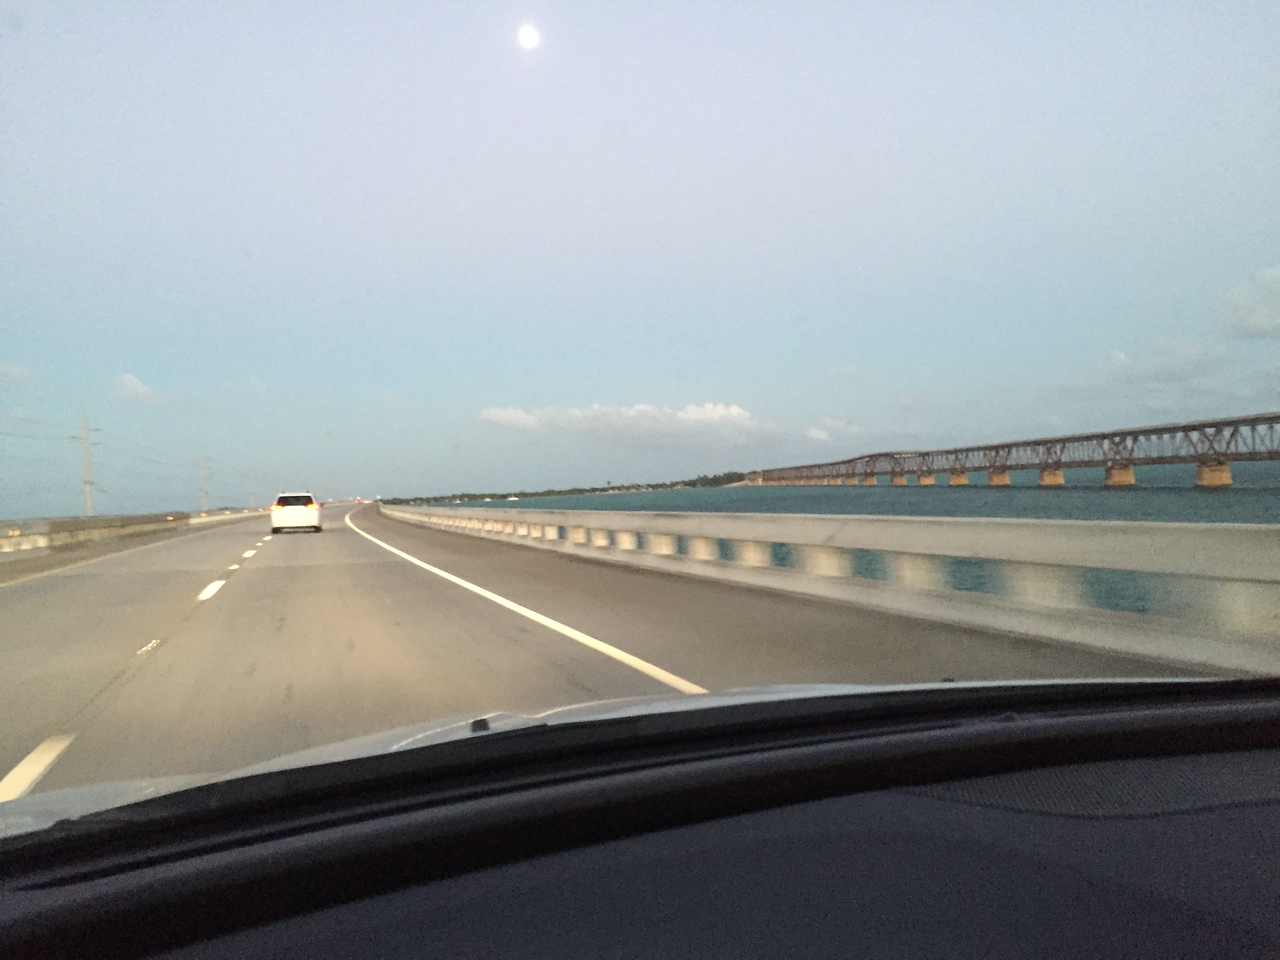 We enjoyed the drive over all the long bridges between Key Largo and Key West.  It took nearly two hours to travel the 95 miles back to the hotel.